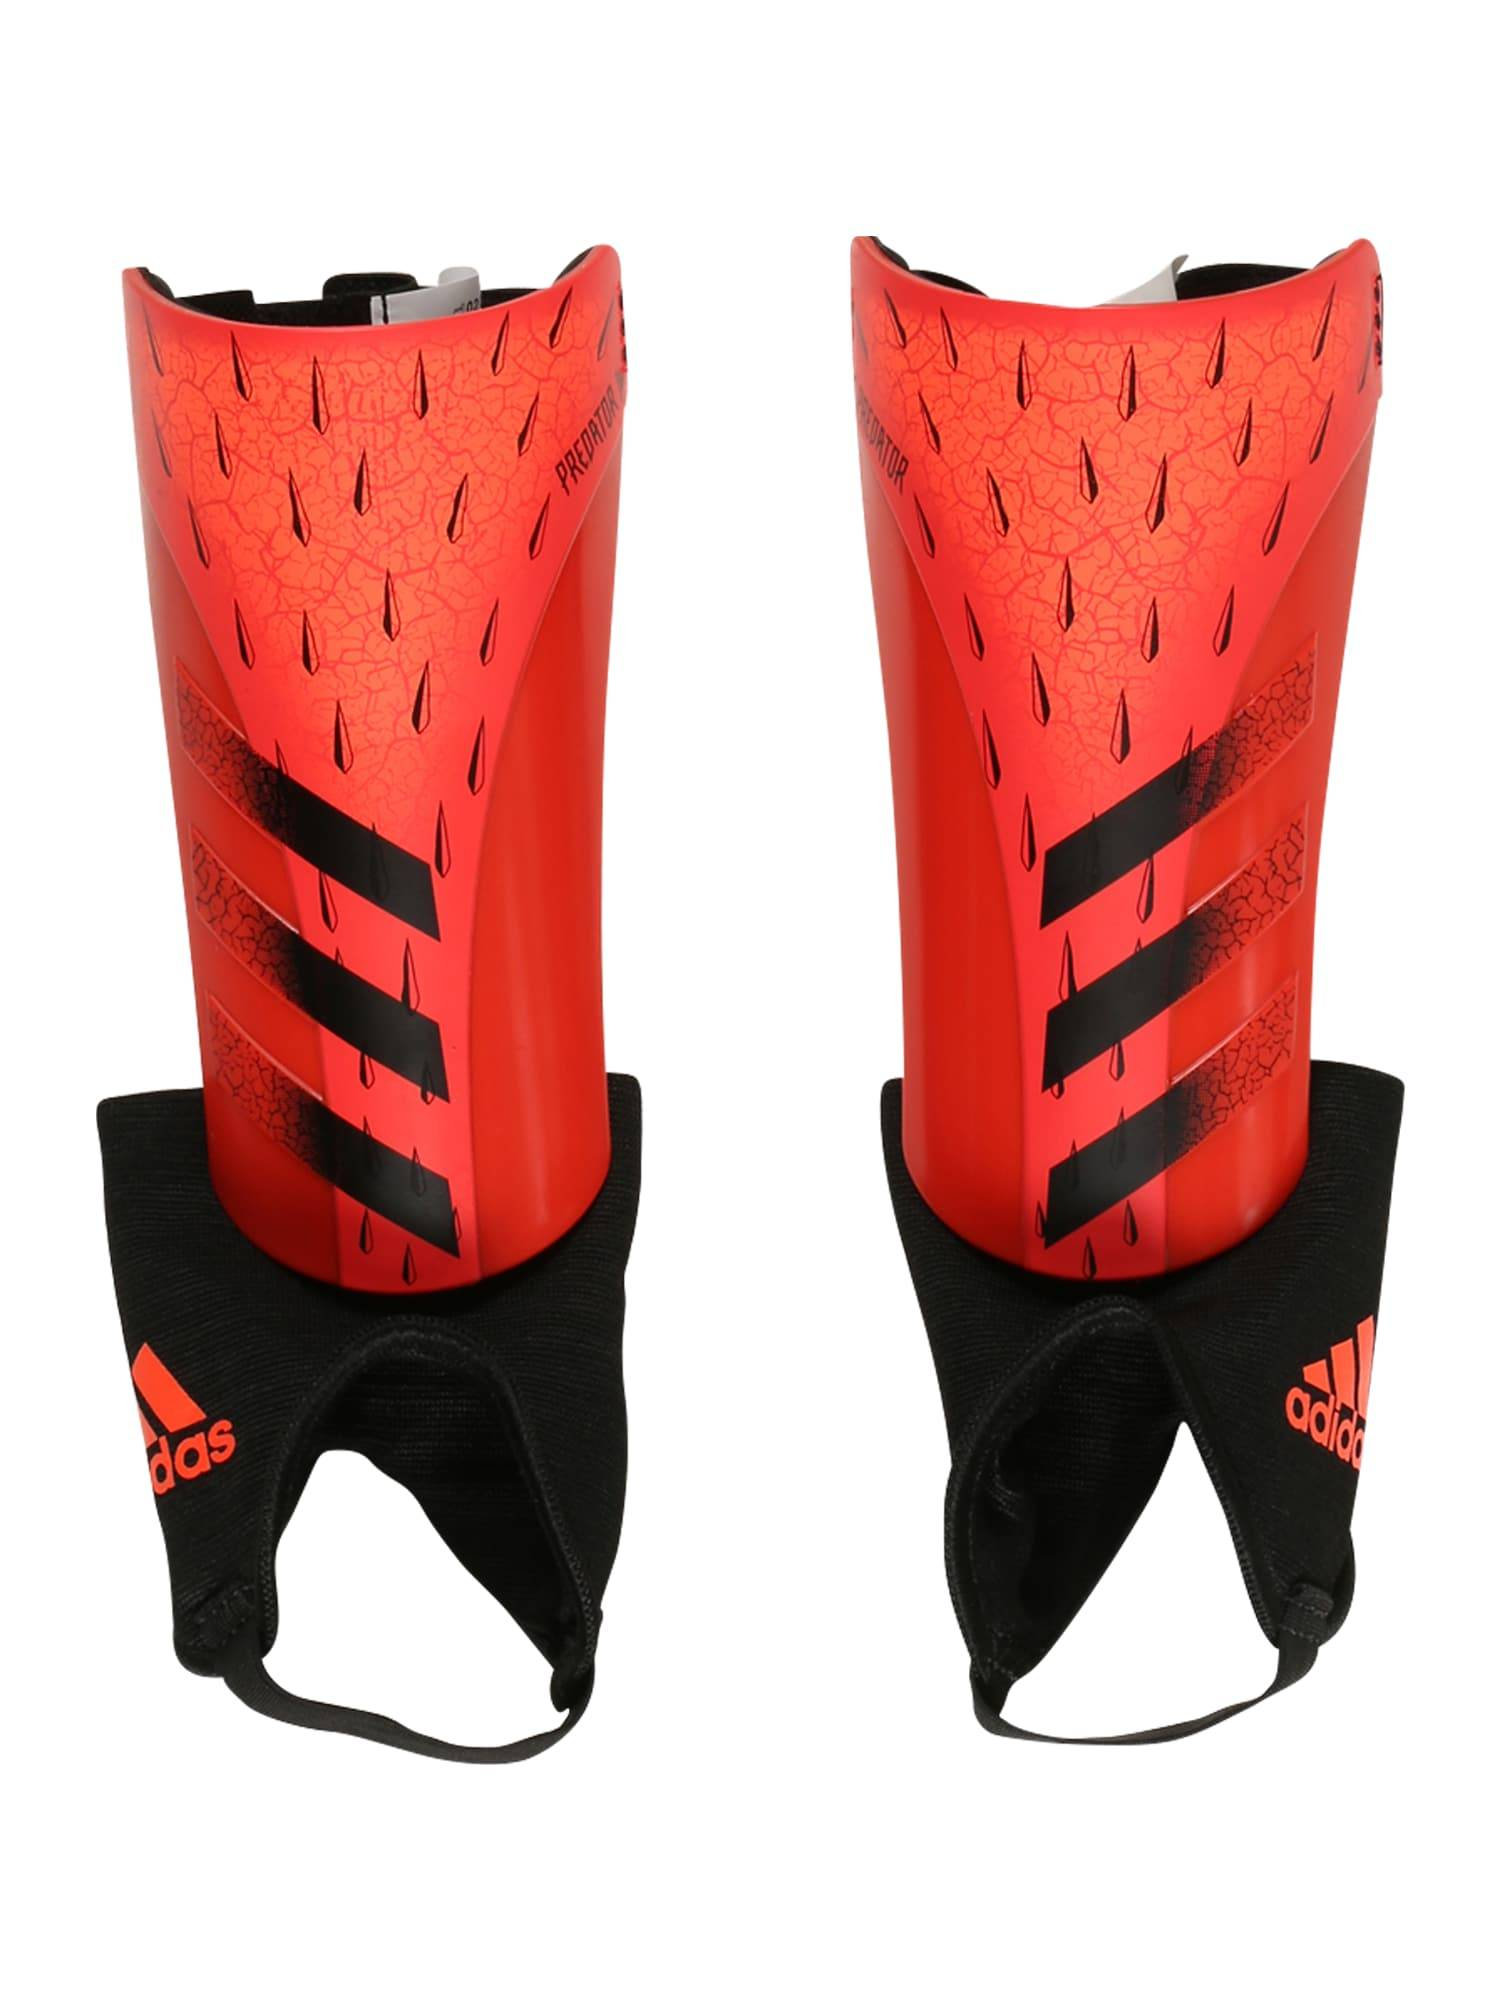 ADIDAS PERFORMANCE Accessoires  - Rouge - Taille: L - boy